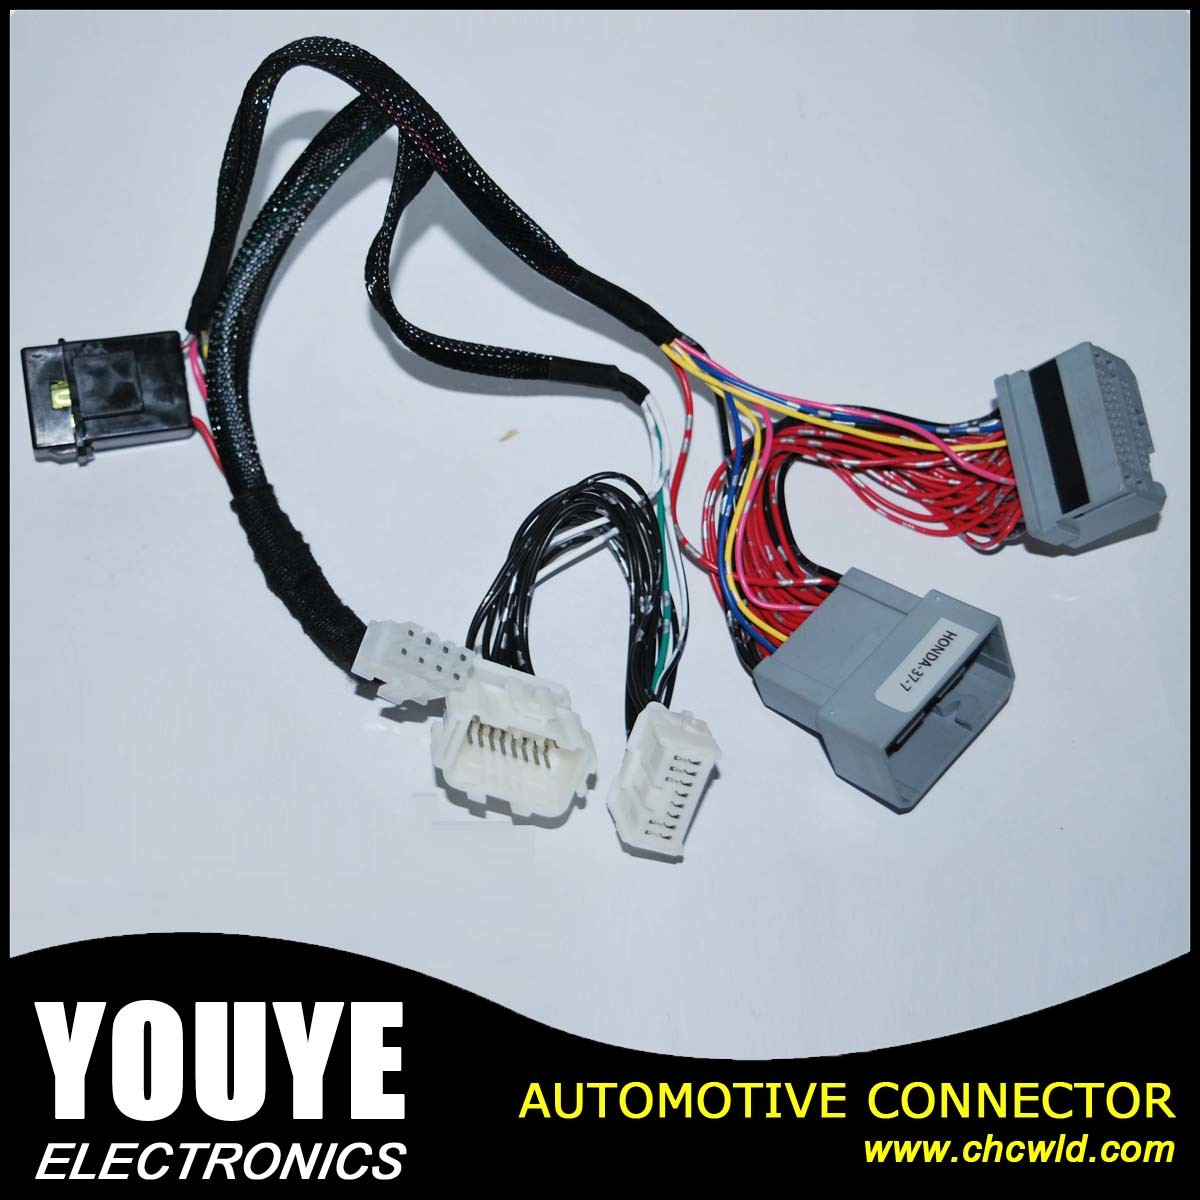 Jeep Yj Wiring Harness Ebay Auto Electrical Diagram Painless Kits Bar